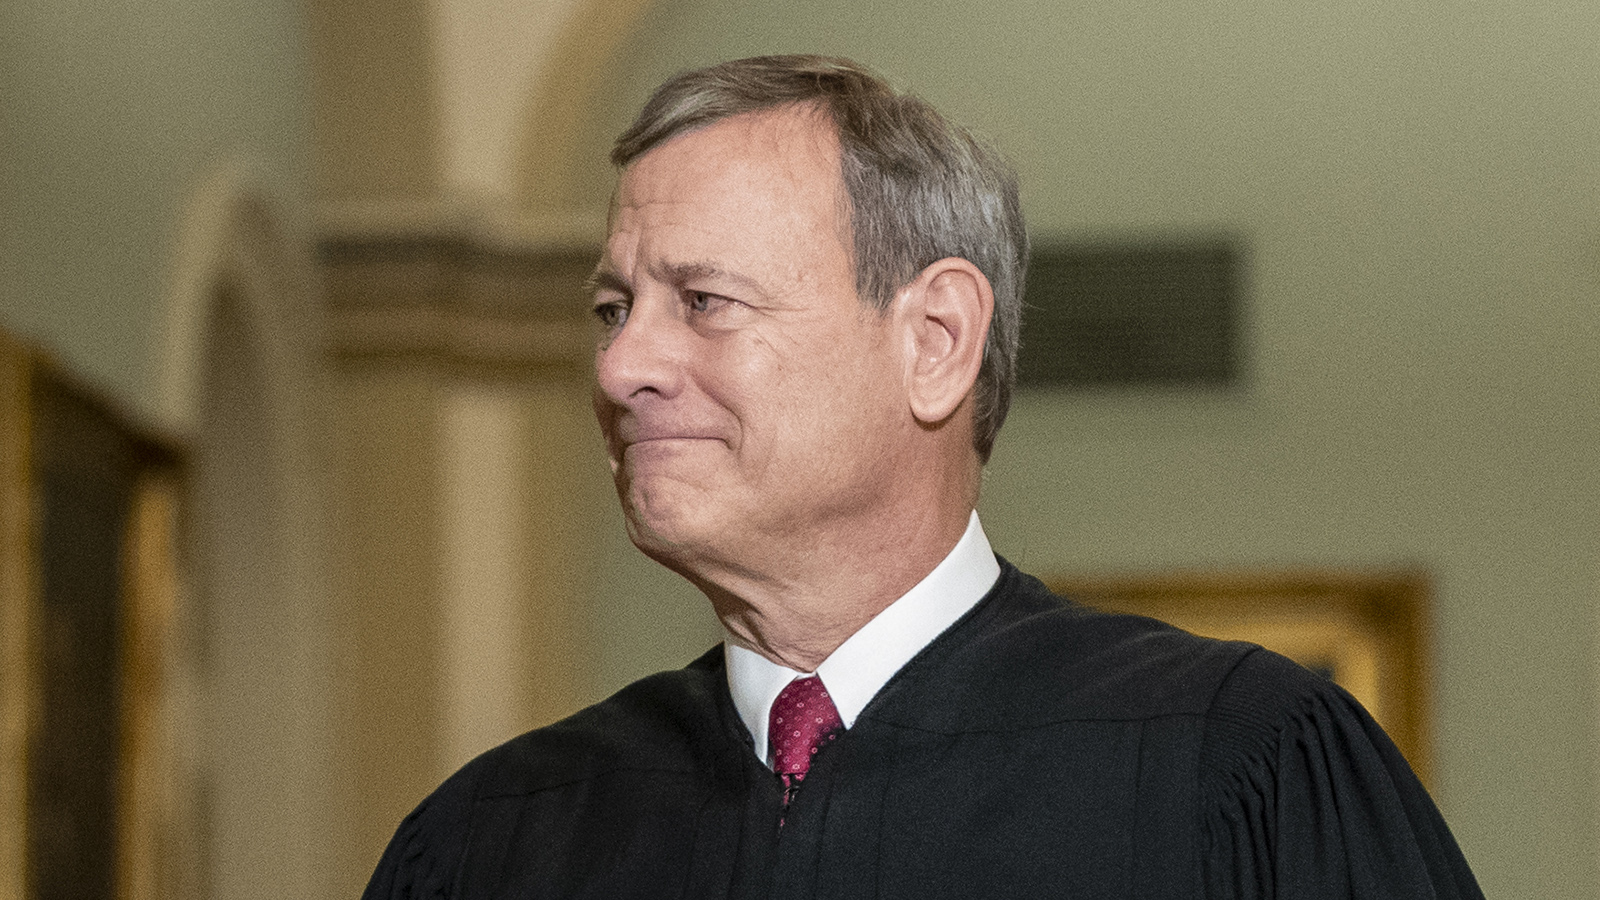 Supreme Court Chief Justice John Roberts arrives to the Senate chamber for impeachment proceedings at the U.S. Capitol on January 16, in Washington.